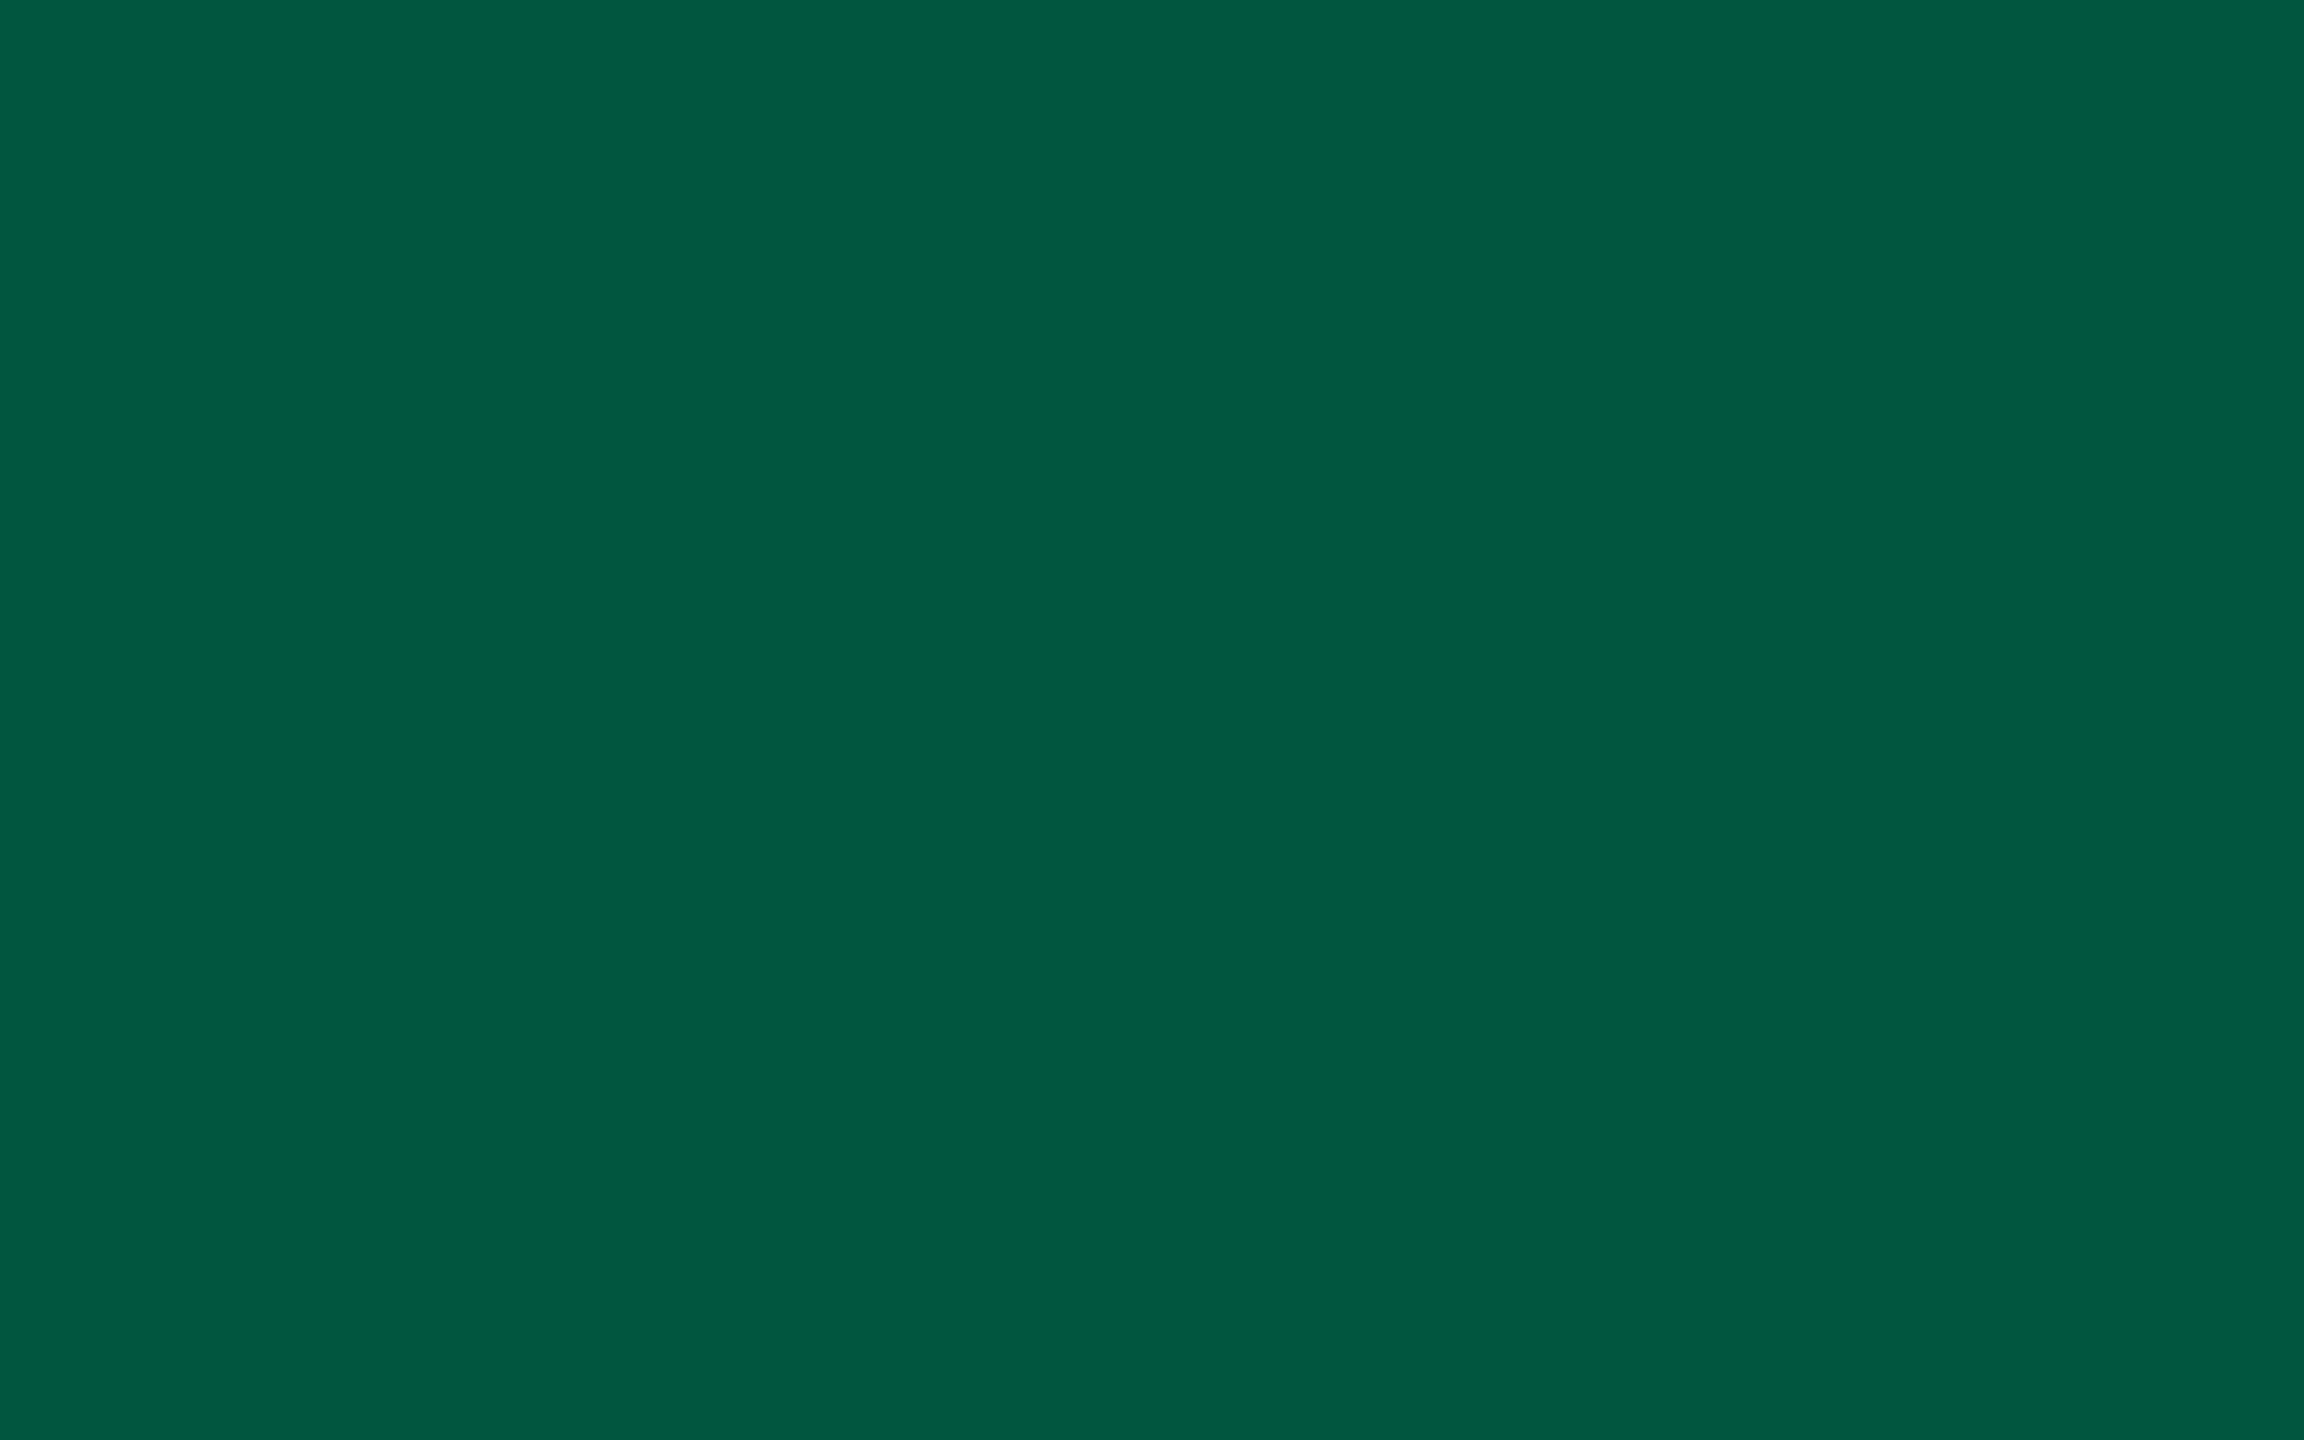 2304x1440 Sacramento State Green Solid Color Background